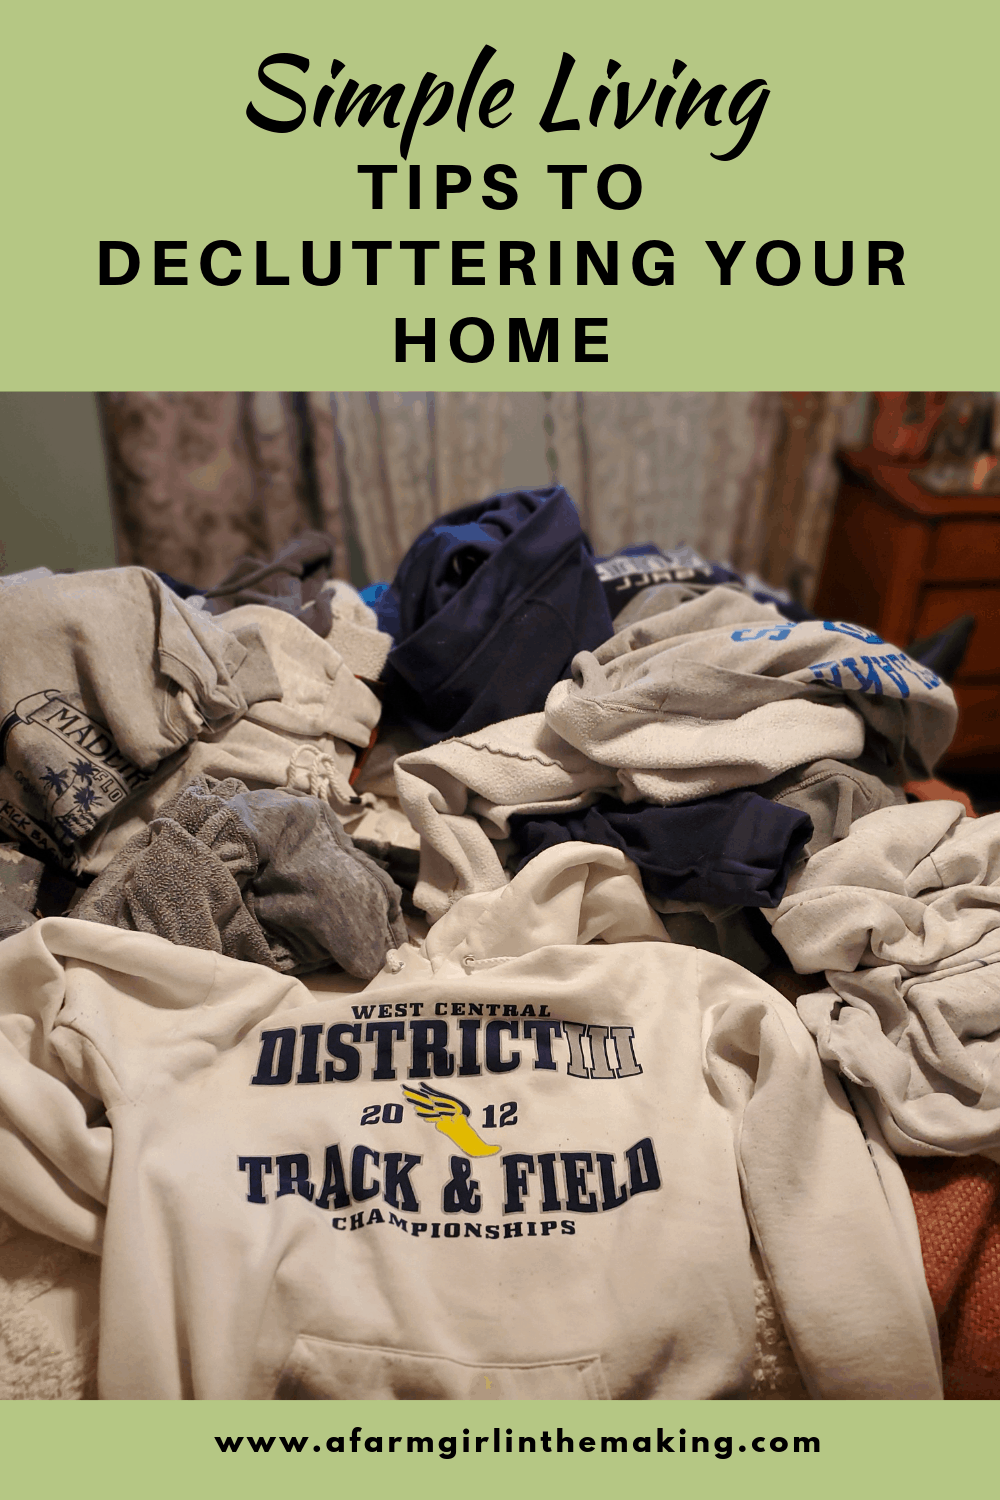 Simple Living | Tips to Decluttering Your Home